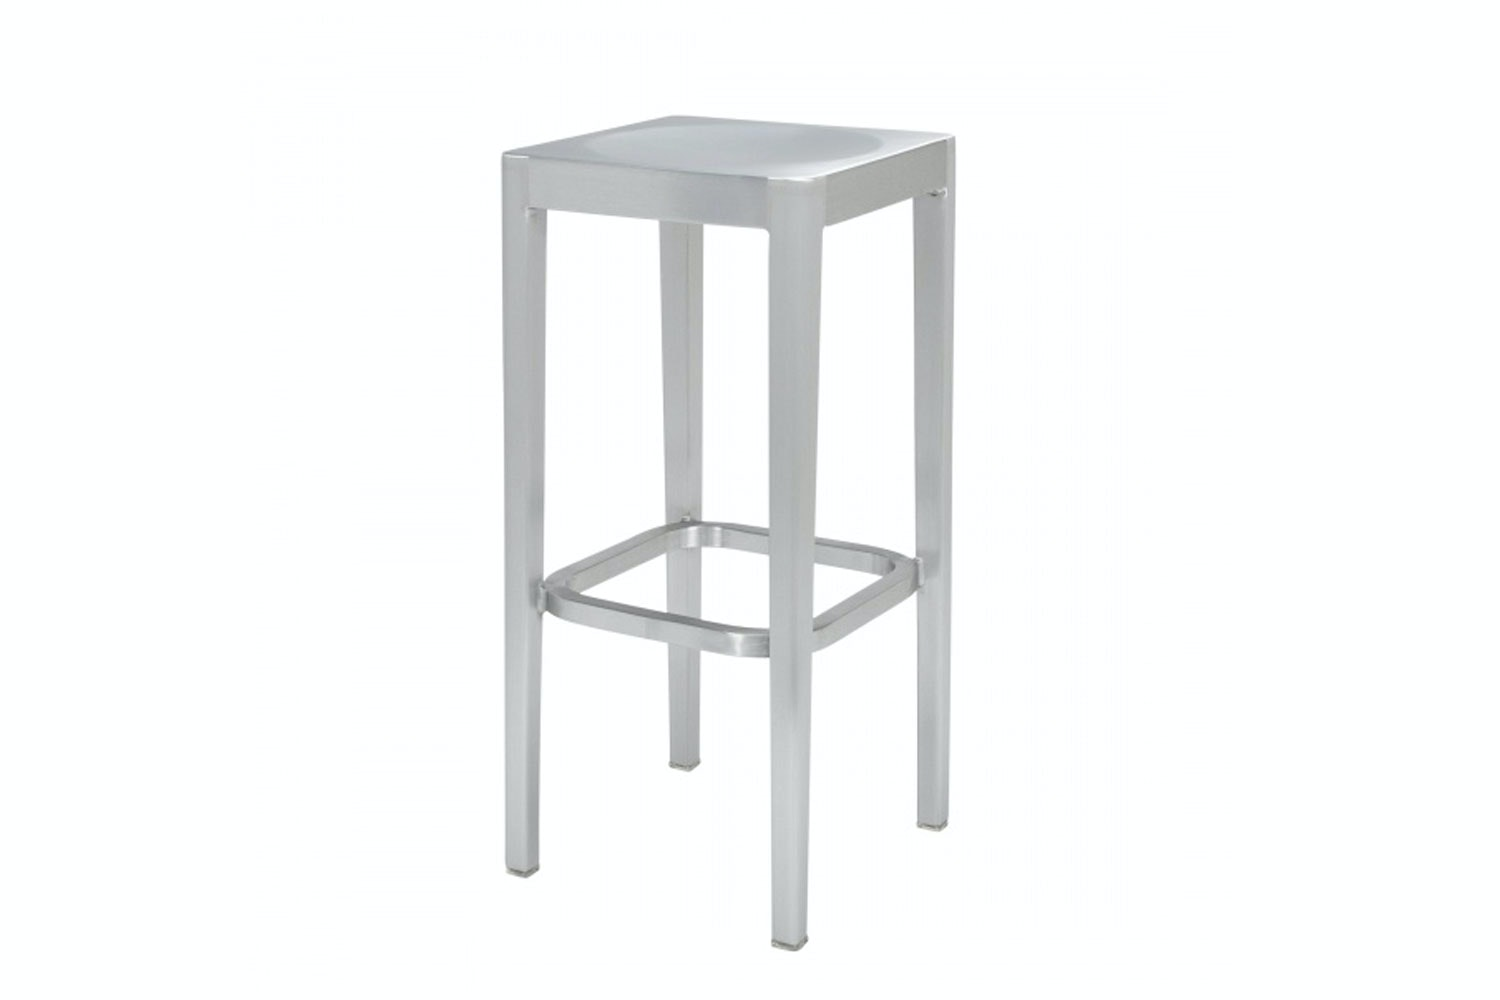 Emeco stool by Philippe Starck for Emeco